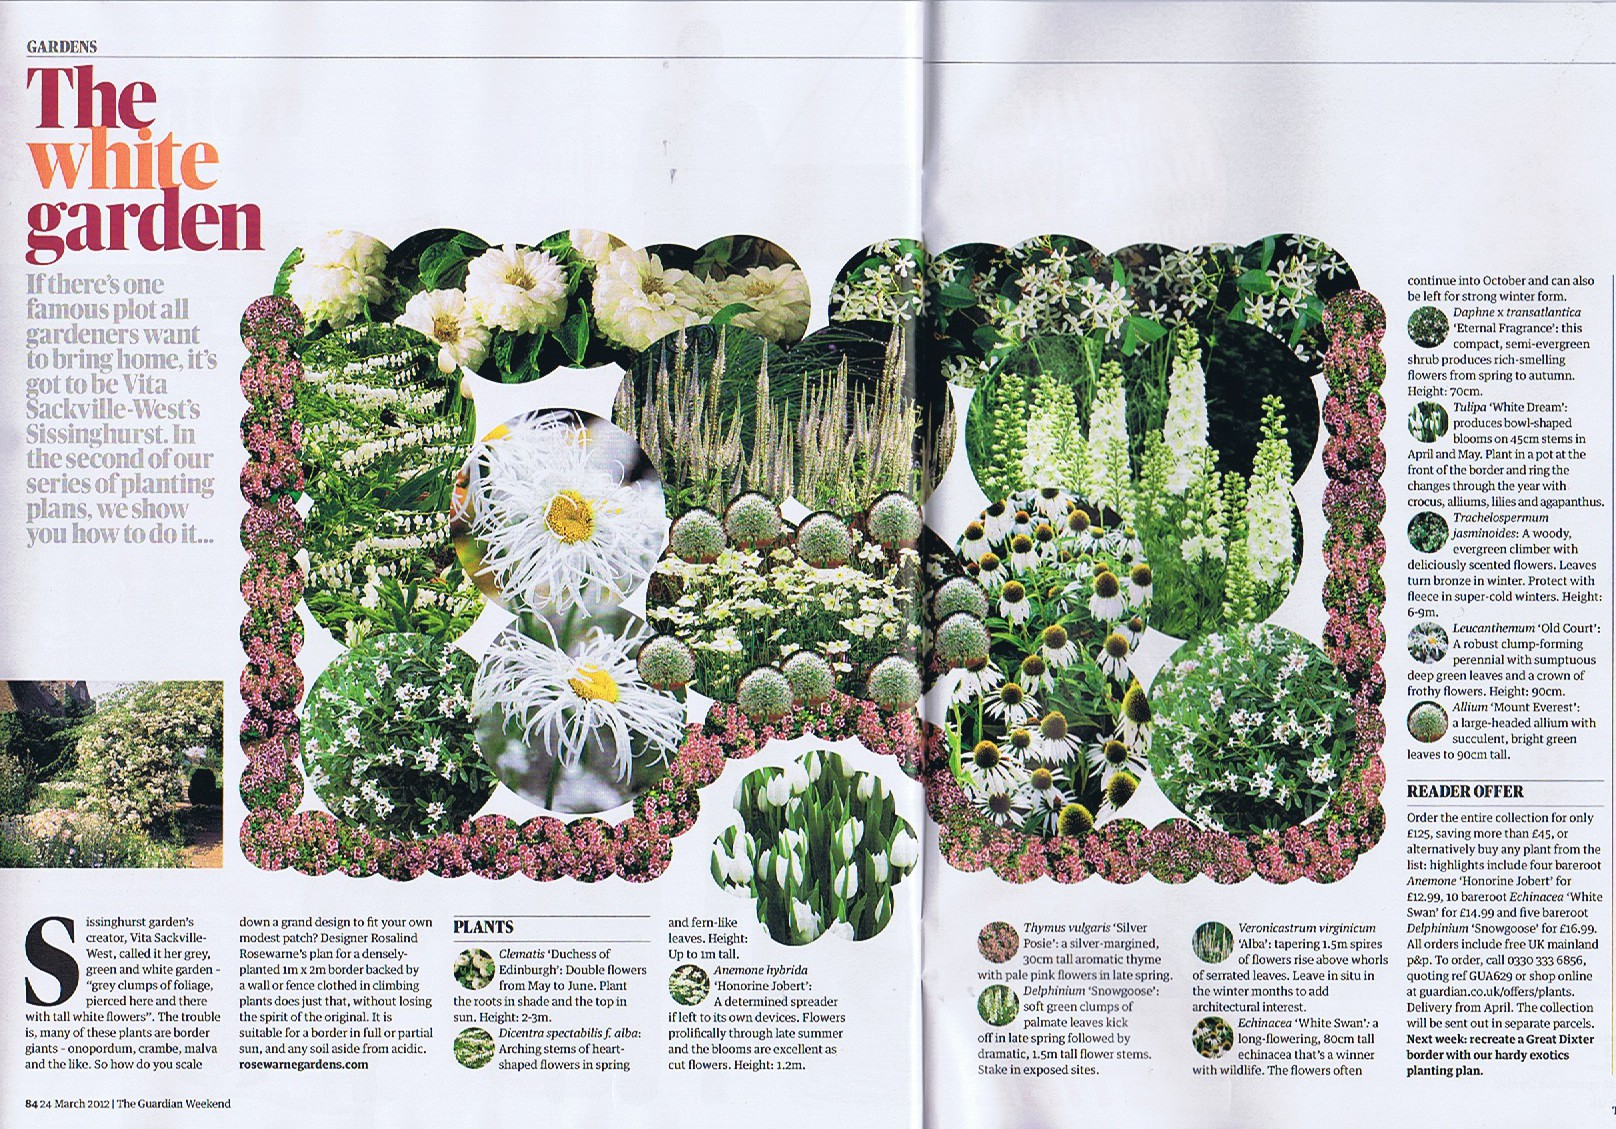 The White Garden - Guardian Weekend Magazine 24/03/2012